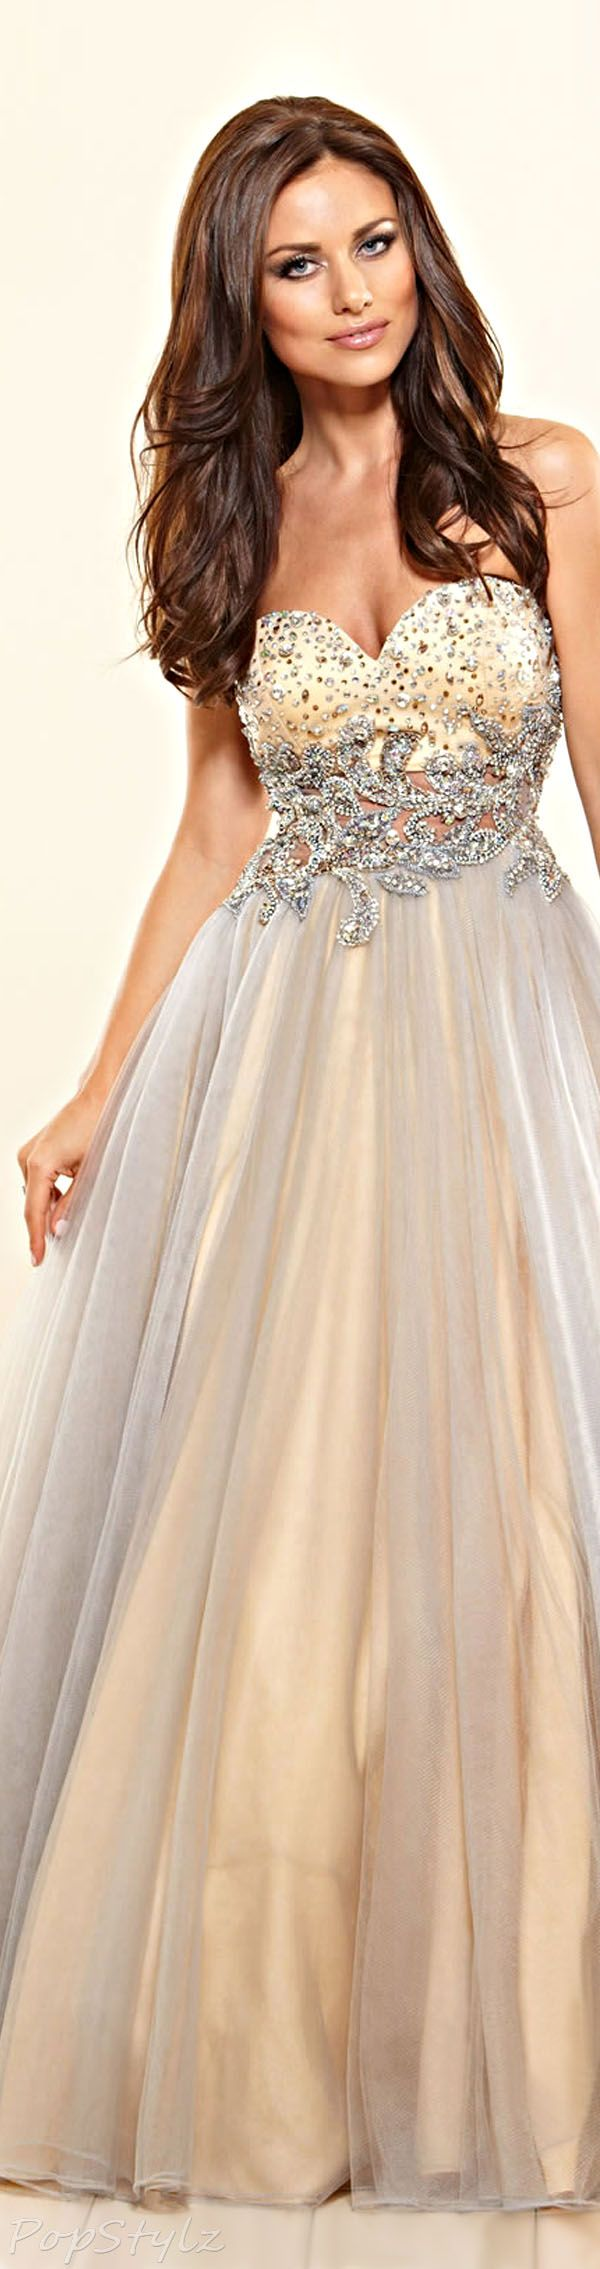 Terani Evening Gown jjdress.net | Dresses | Pinterest | Dresses, Gowns and Prom dresses